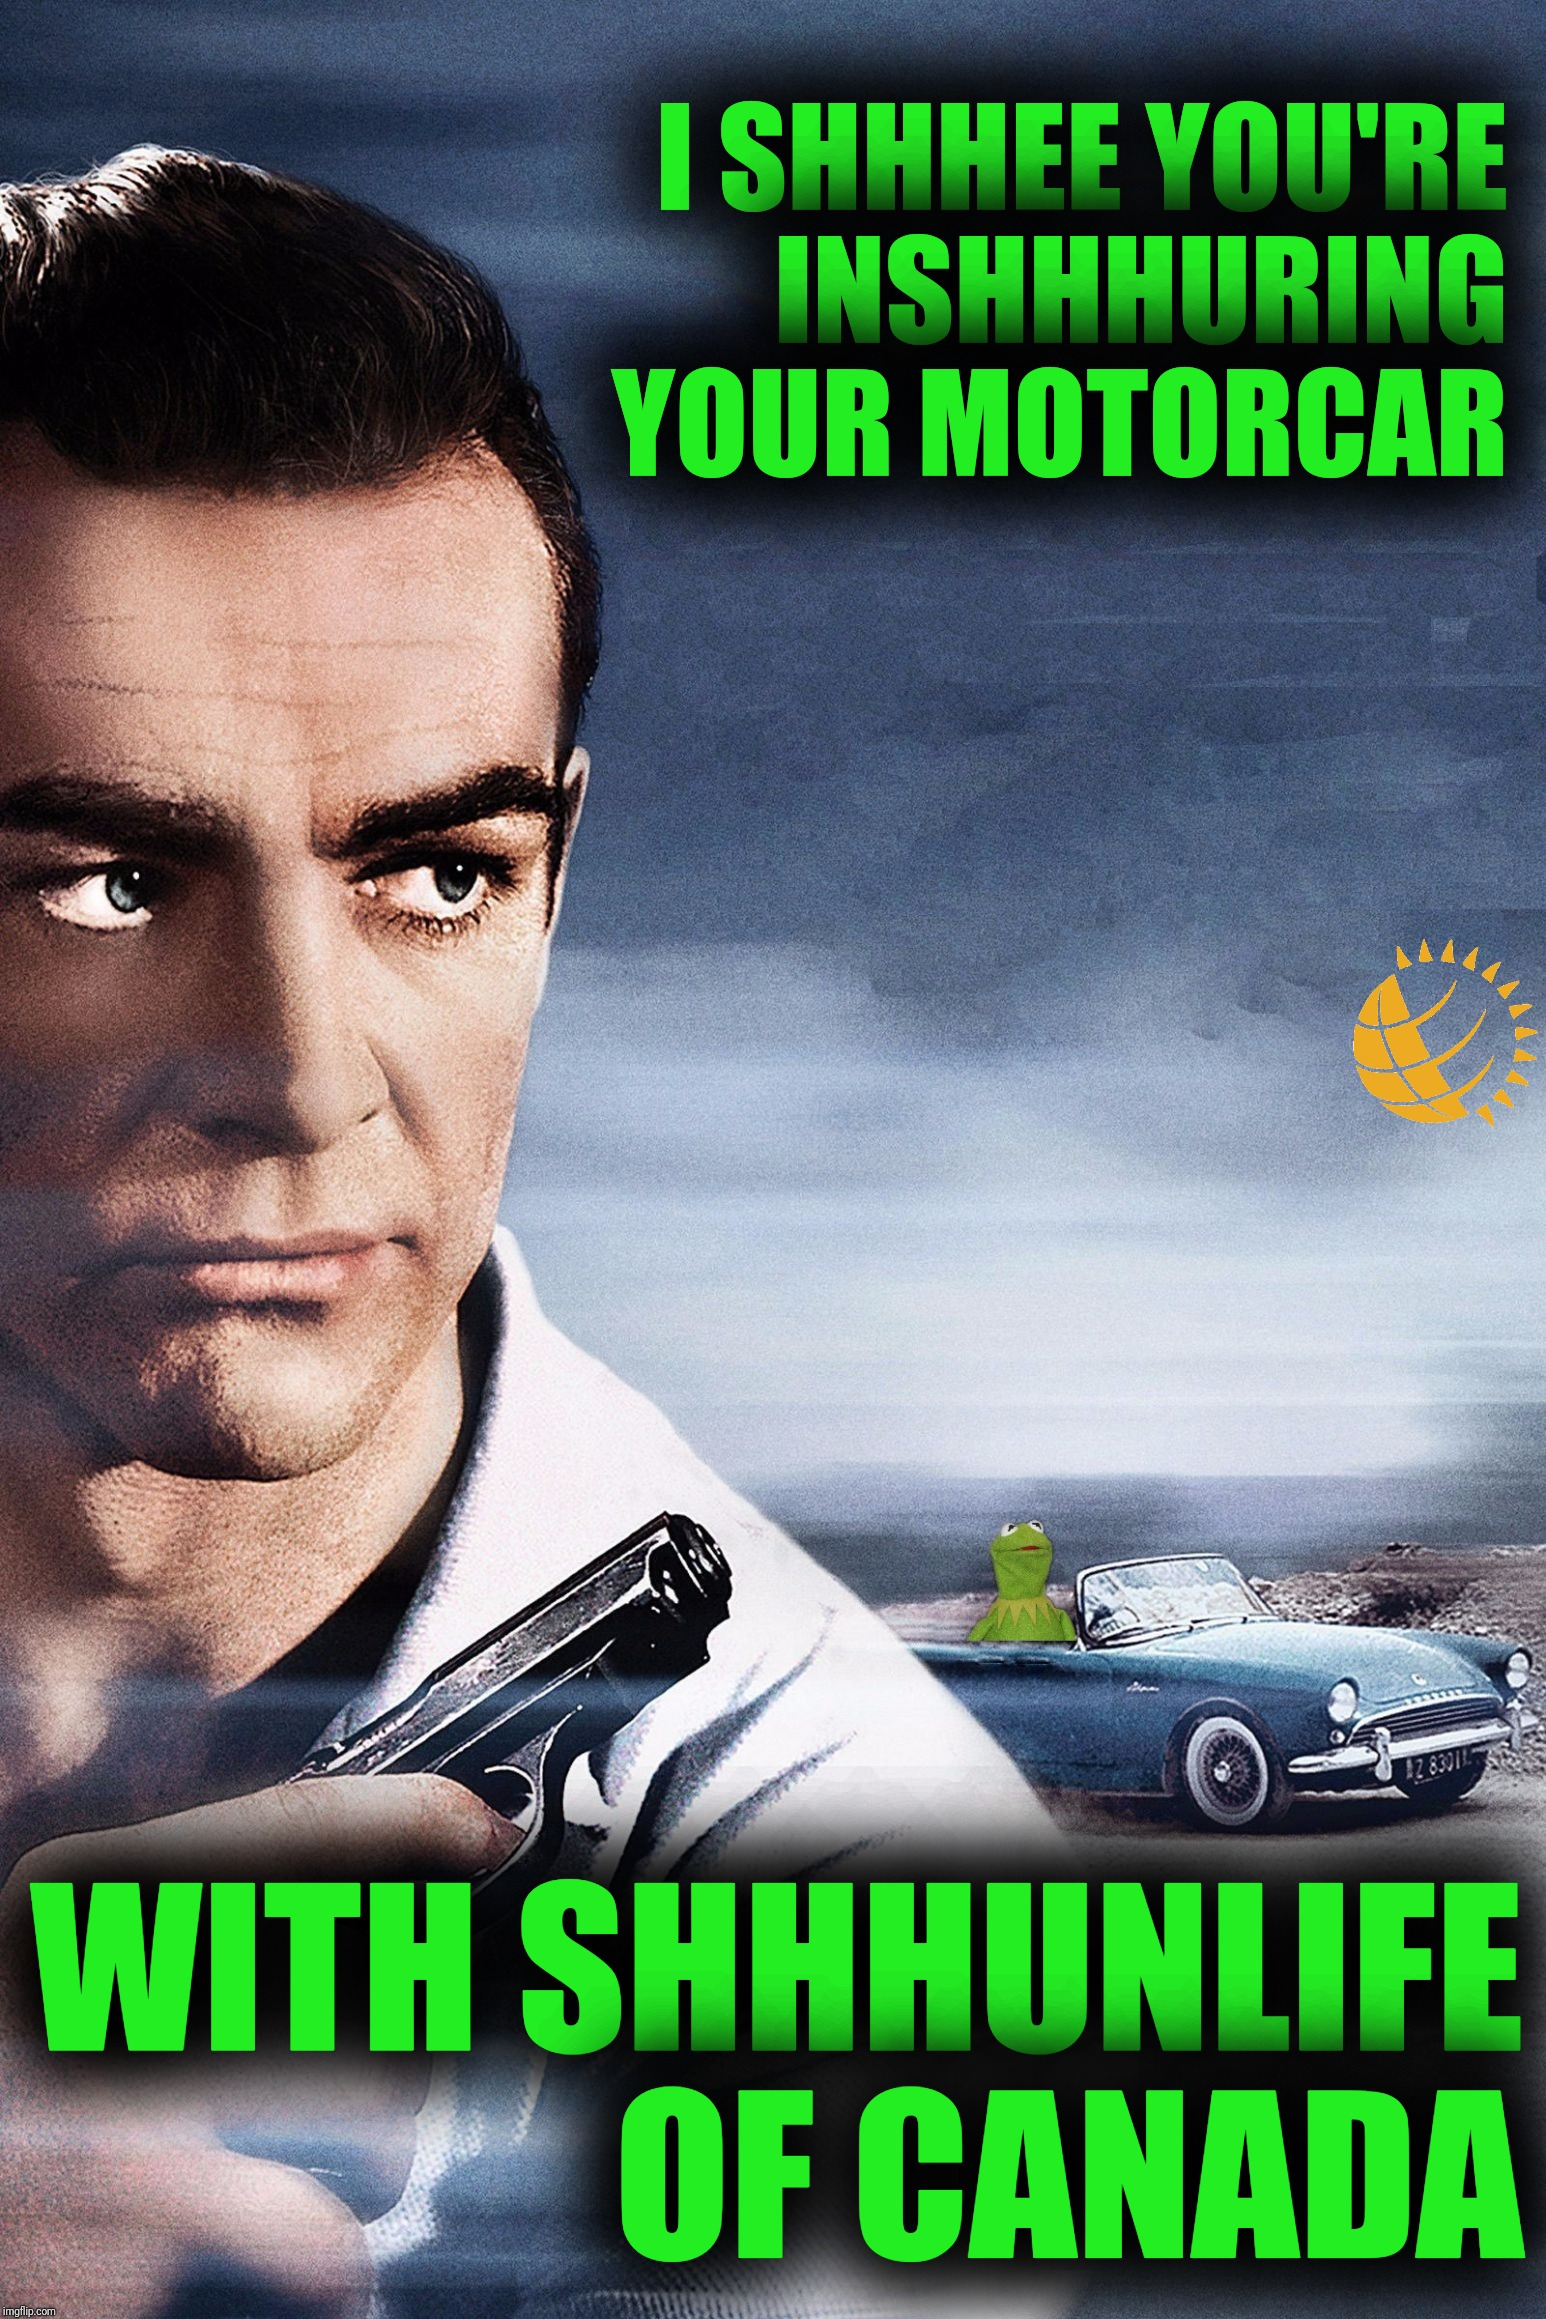 Connery vs Kermit | I SHHHEE YOU'RE INSHHHURING YOUR MOTORCAR WITH SHHHUNLIFE OF CANADA | image tagged in connery vs kermit | made w/ Imgflip meme maker